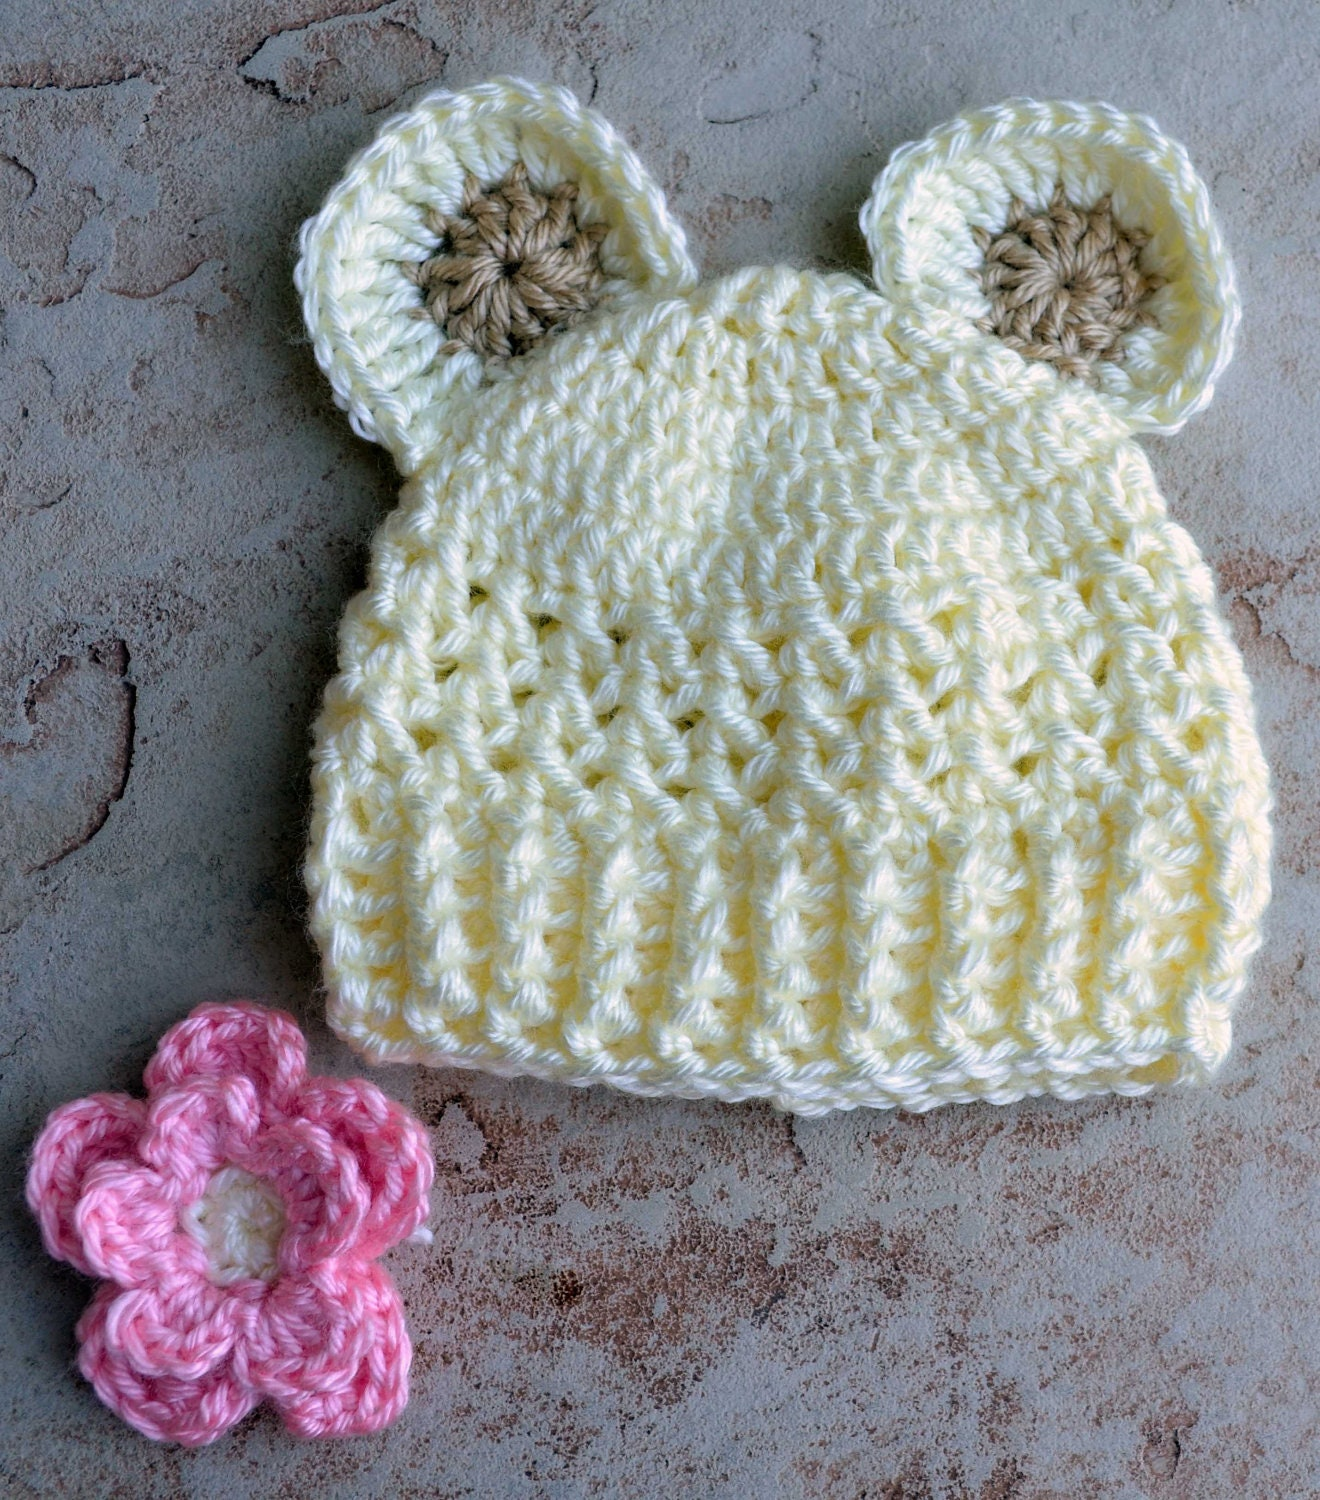 Newborn Crochet Hats, Gender Neutral Baby Hats, Cream Colored Baby Bear Hat, Baby Bear Crochet Hat, Baby Bear Knit Hat, Newborn Bear Hat